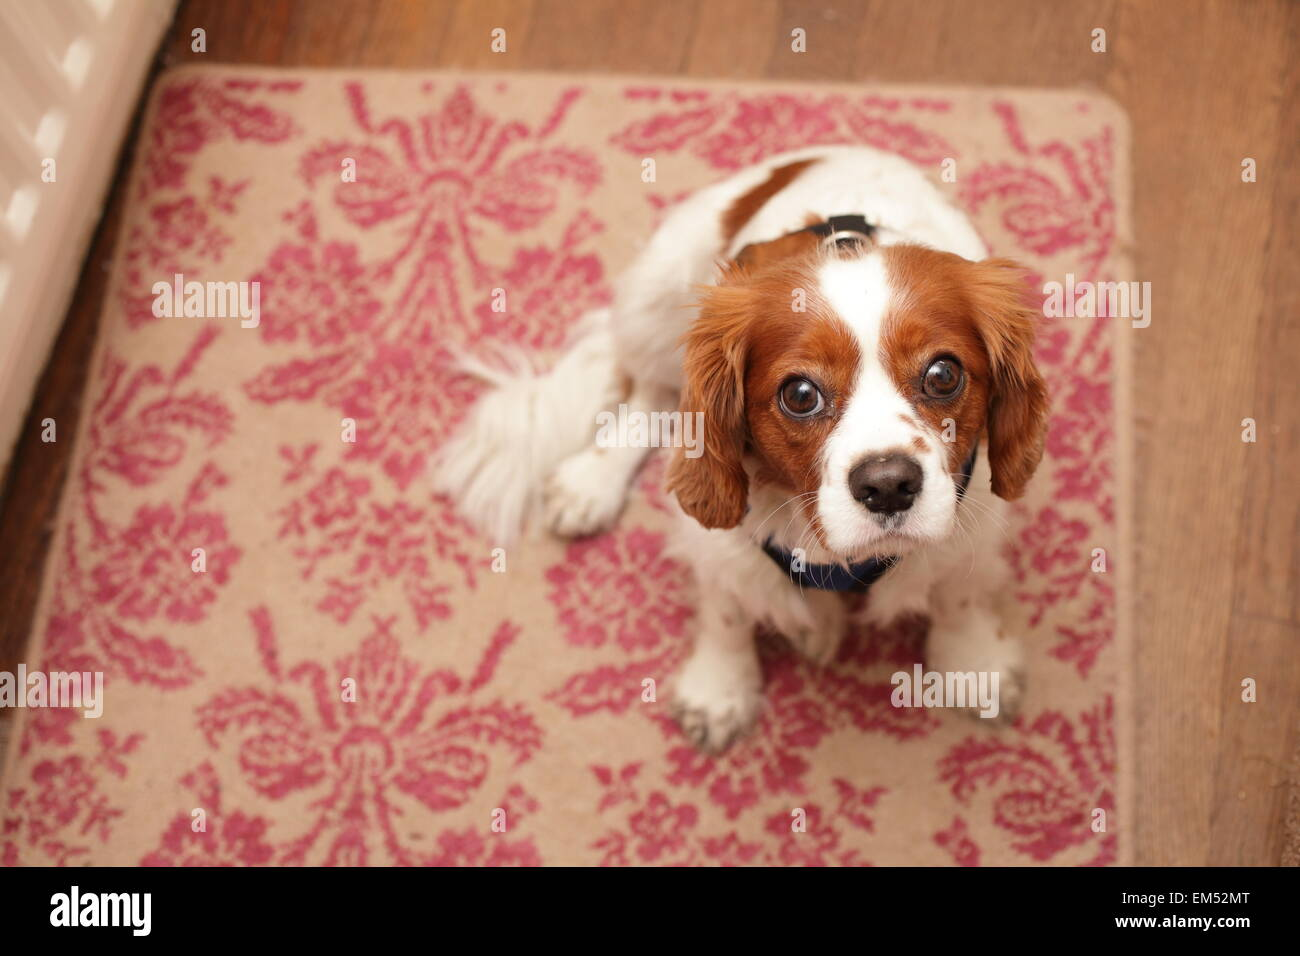 Spaniel waiting for a walk - Stock Image